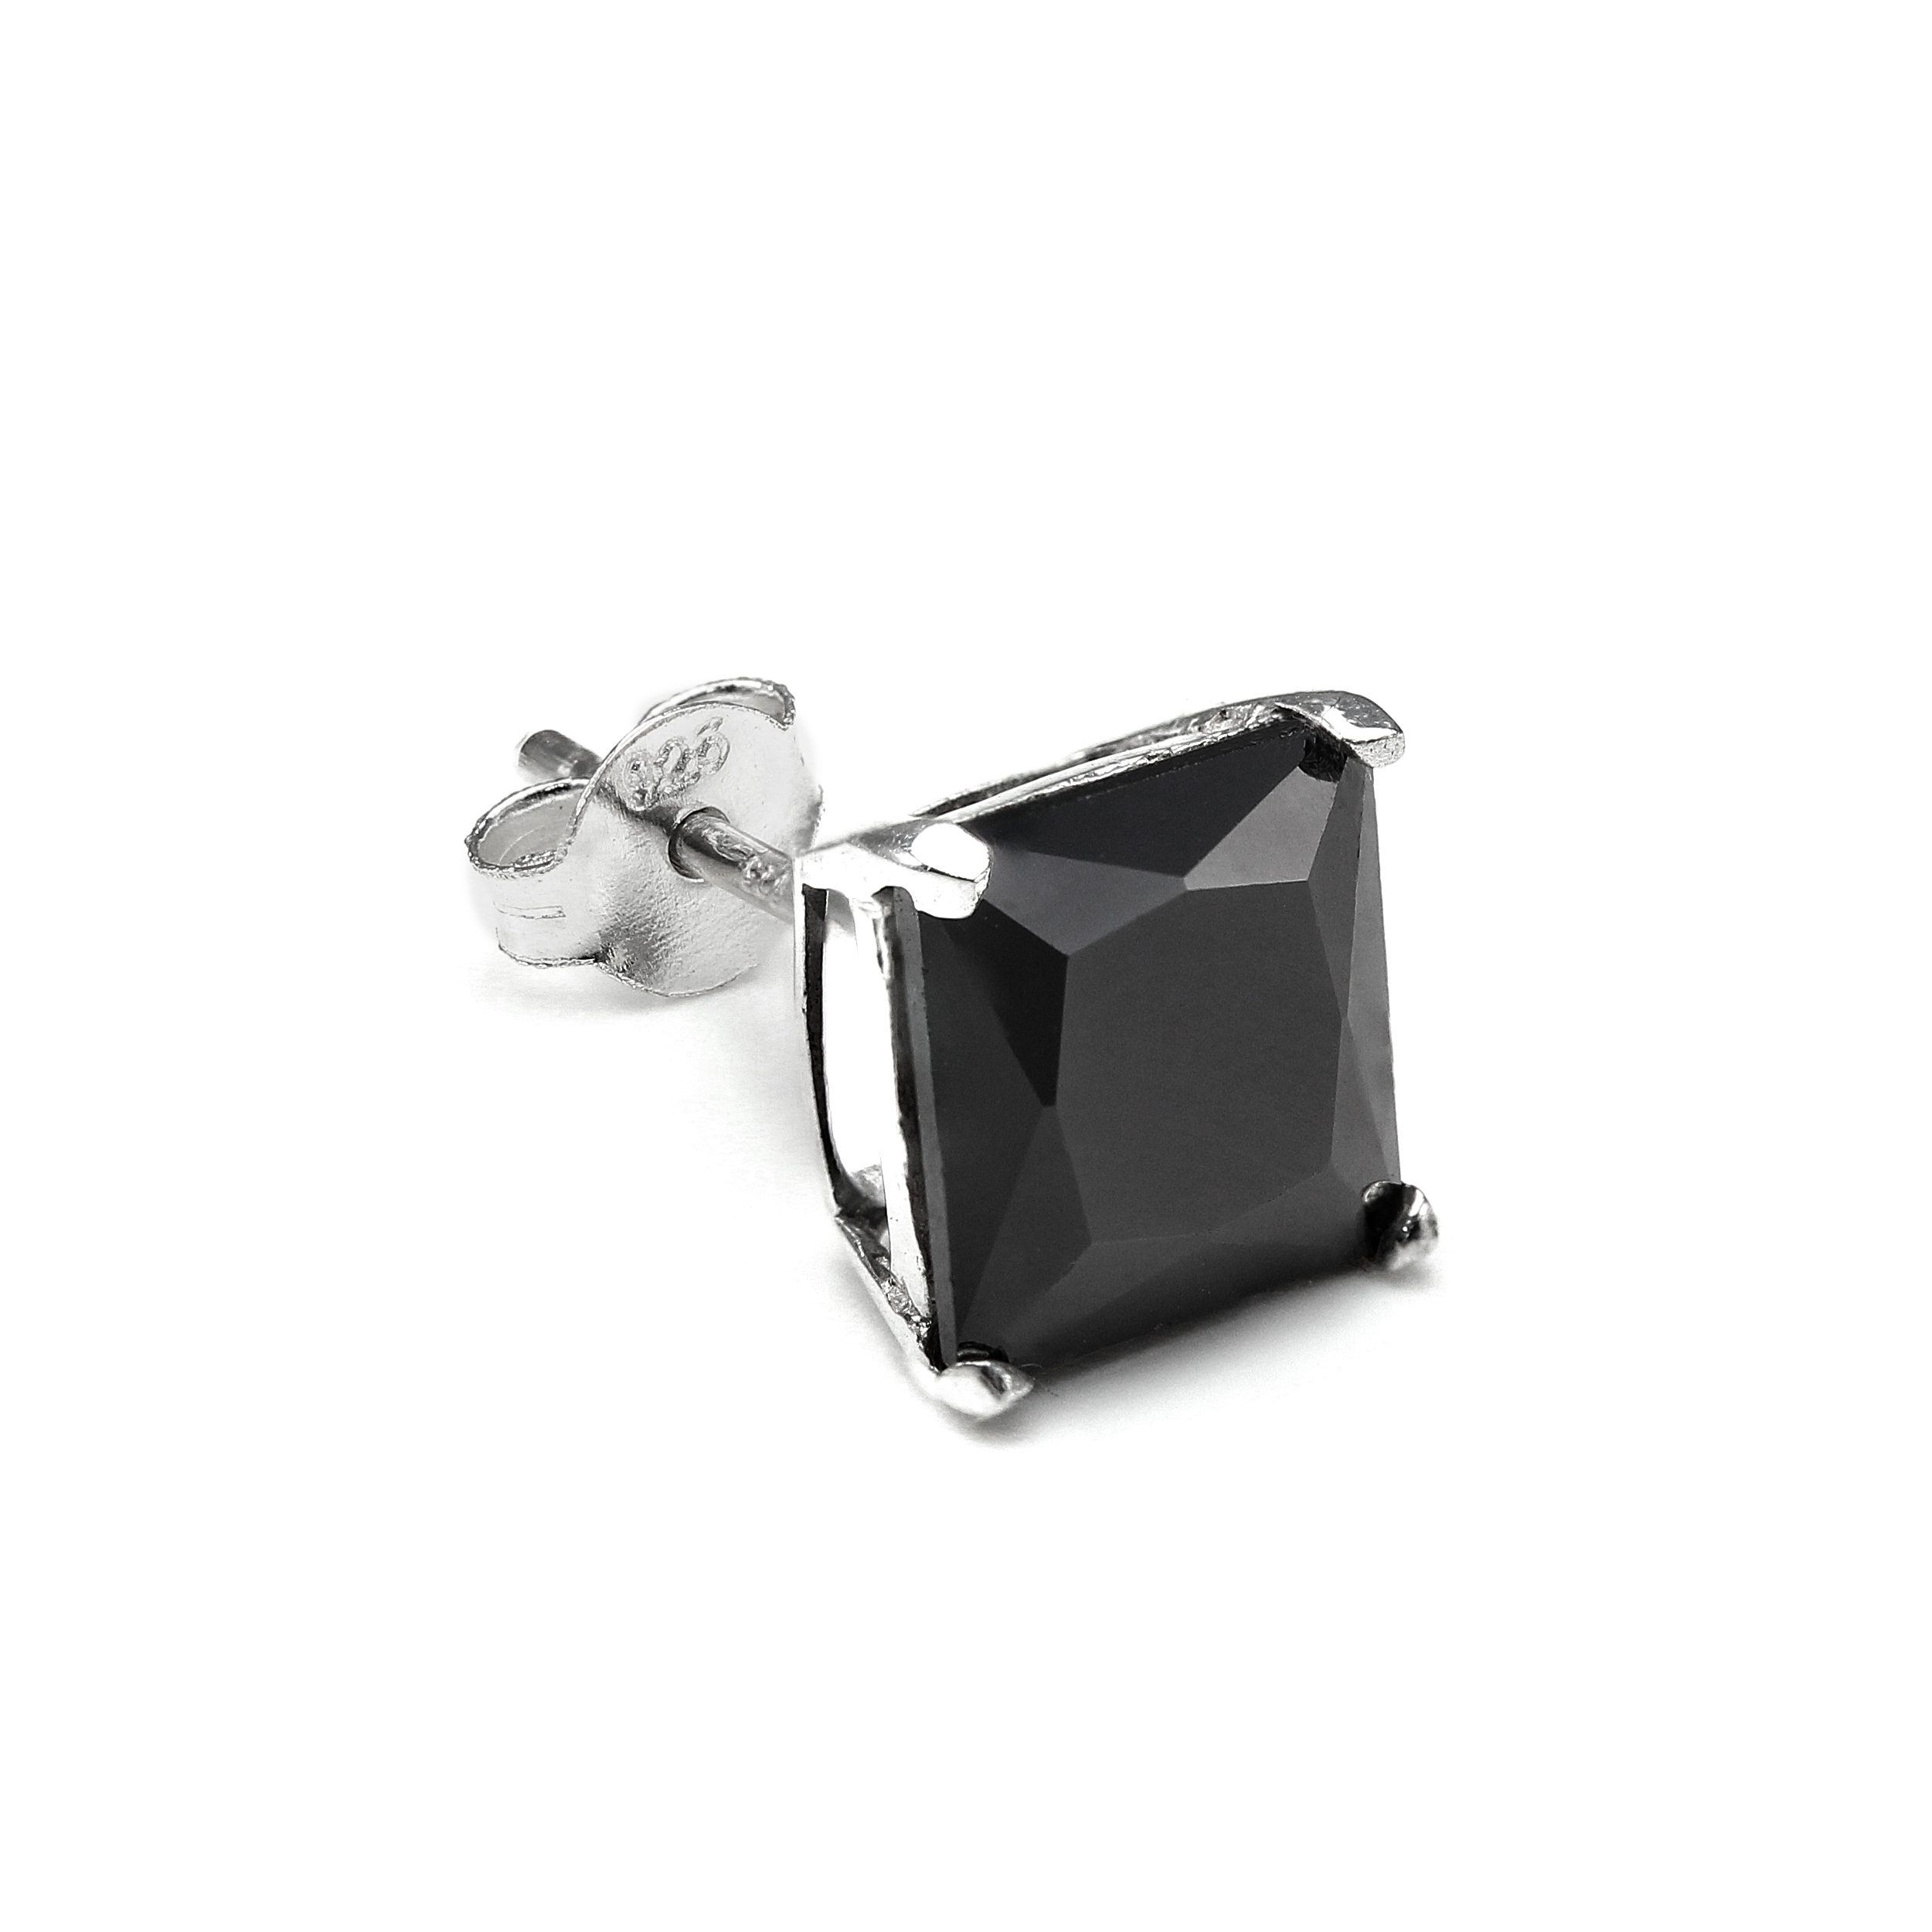 d0913f22378df Details about Sterling Silver Square CZ Crystal Mens Ear Stud / Single /  Clear Black / 4-10mm